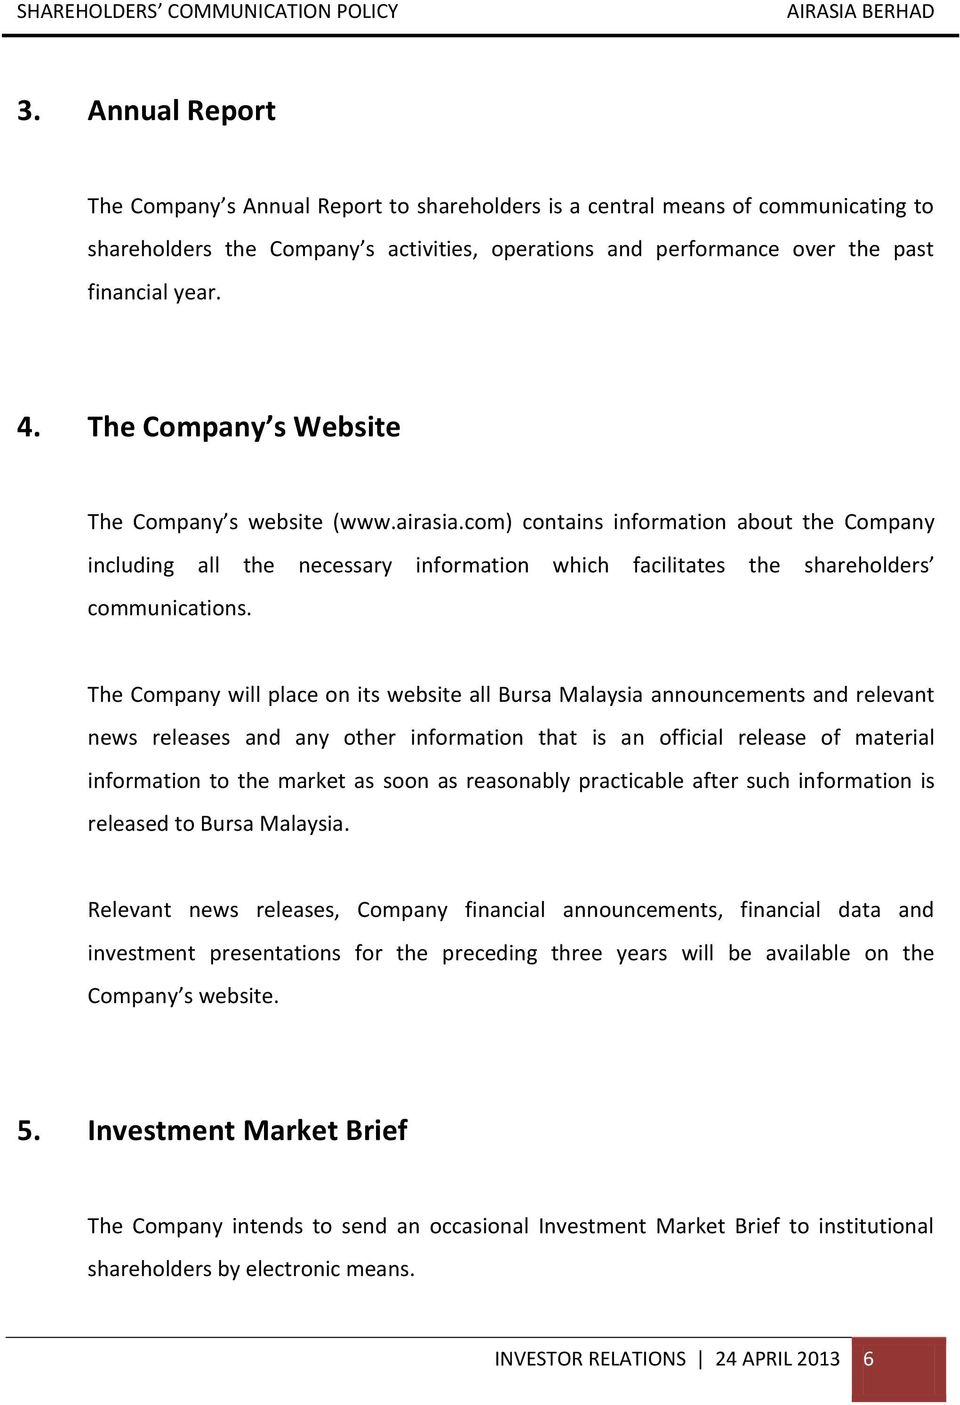 The Company will place on its website all Bursa Malaysia announcements and relevant news releases and any other information that is an official release of material information to the market as soon